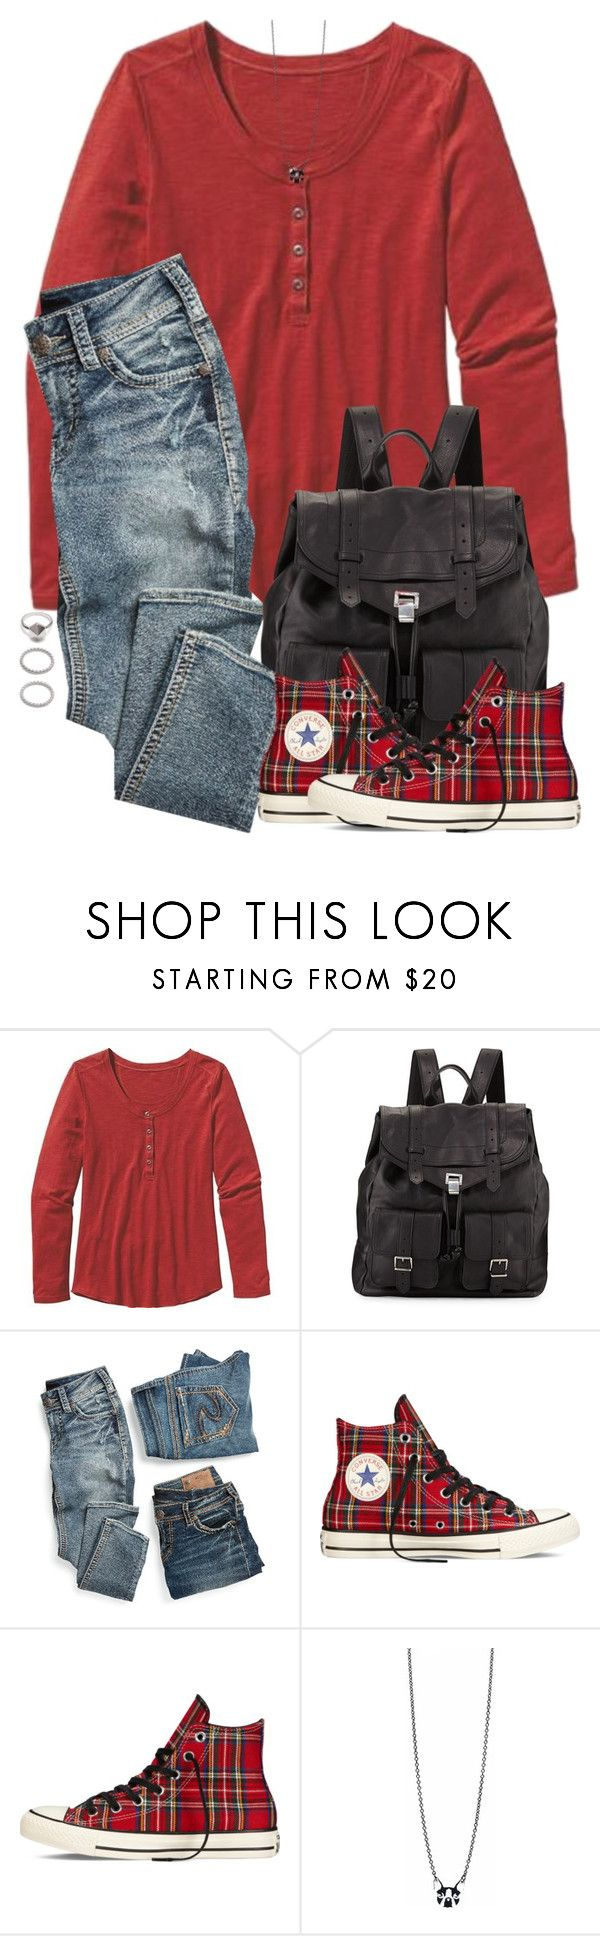 """""""Ron Weasley Inspired Soccer Game Outfit"""" by hpstyle ❤ liked on Polyvore featuring Patagonia, Proenza Schouler, maurices, Converse, Vinca and Forever 21"""